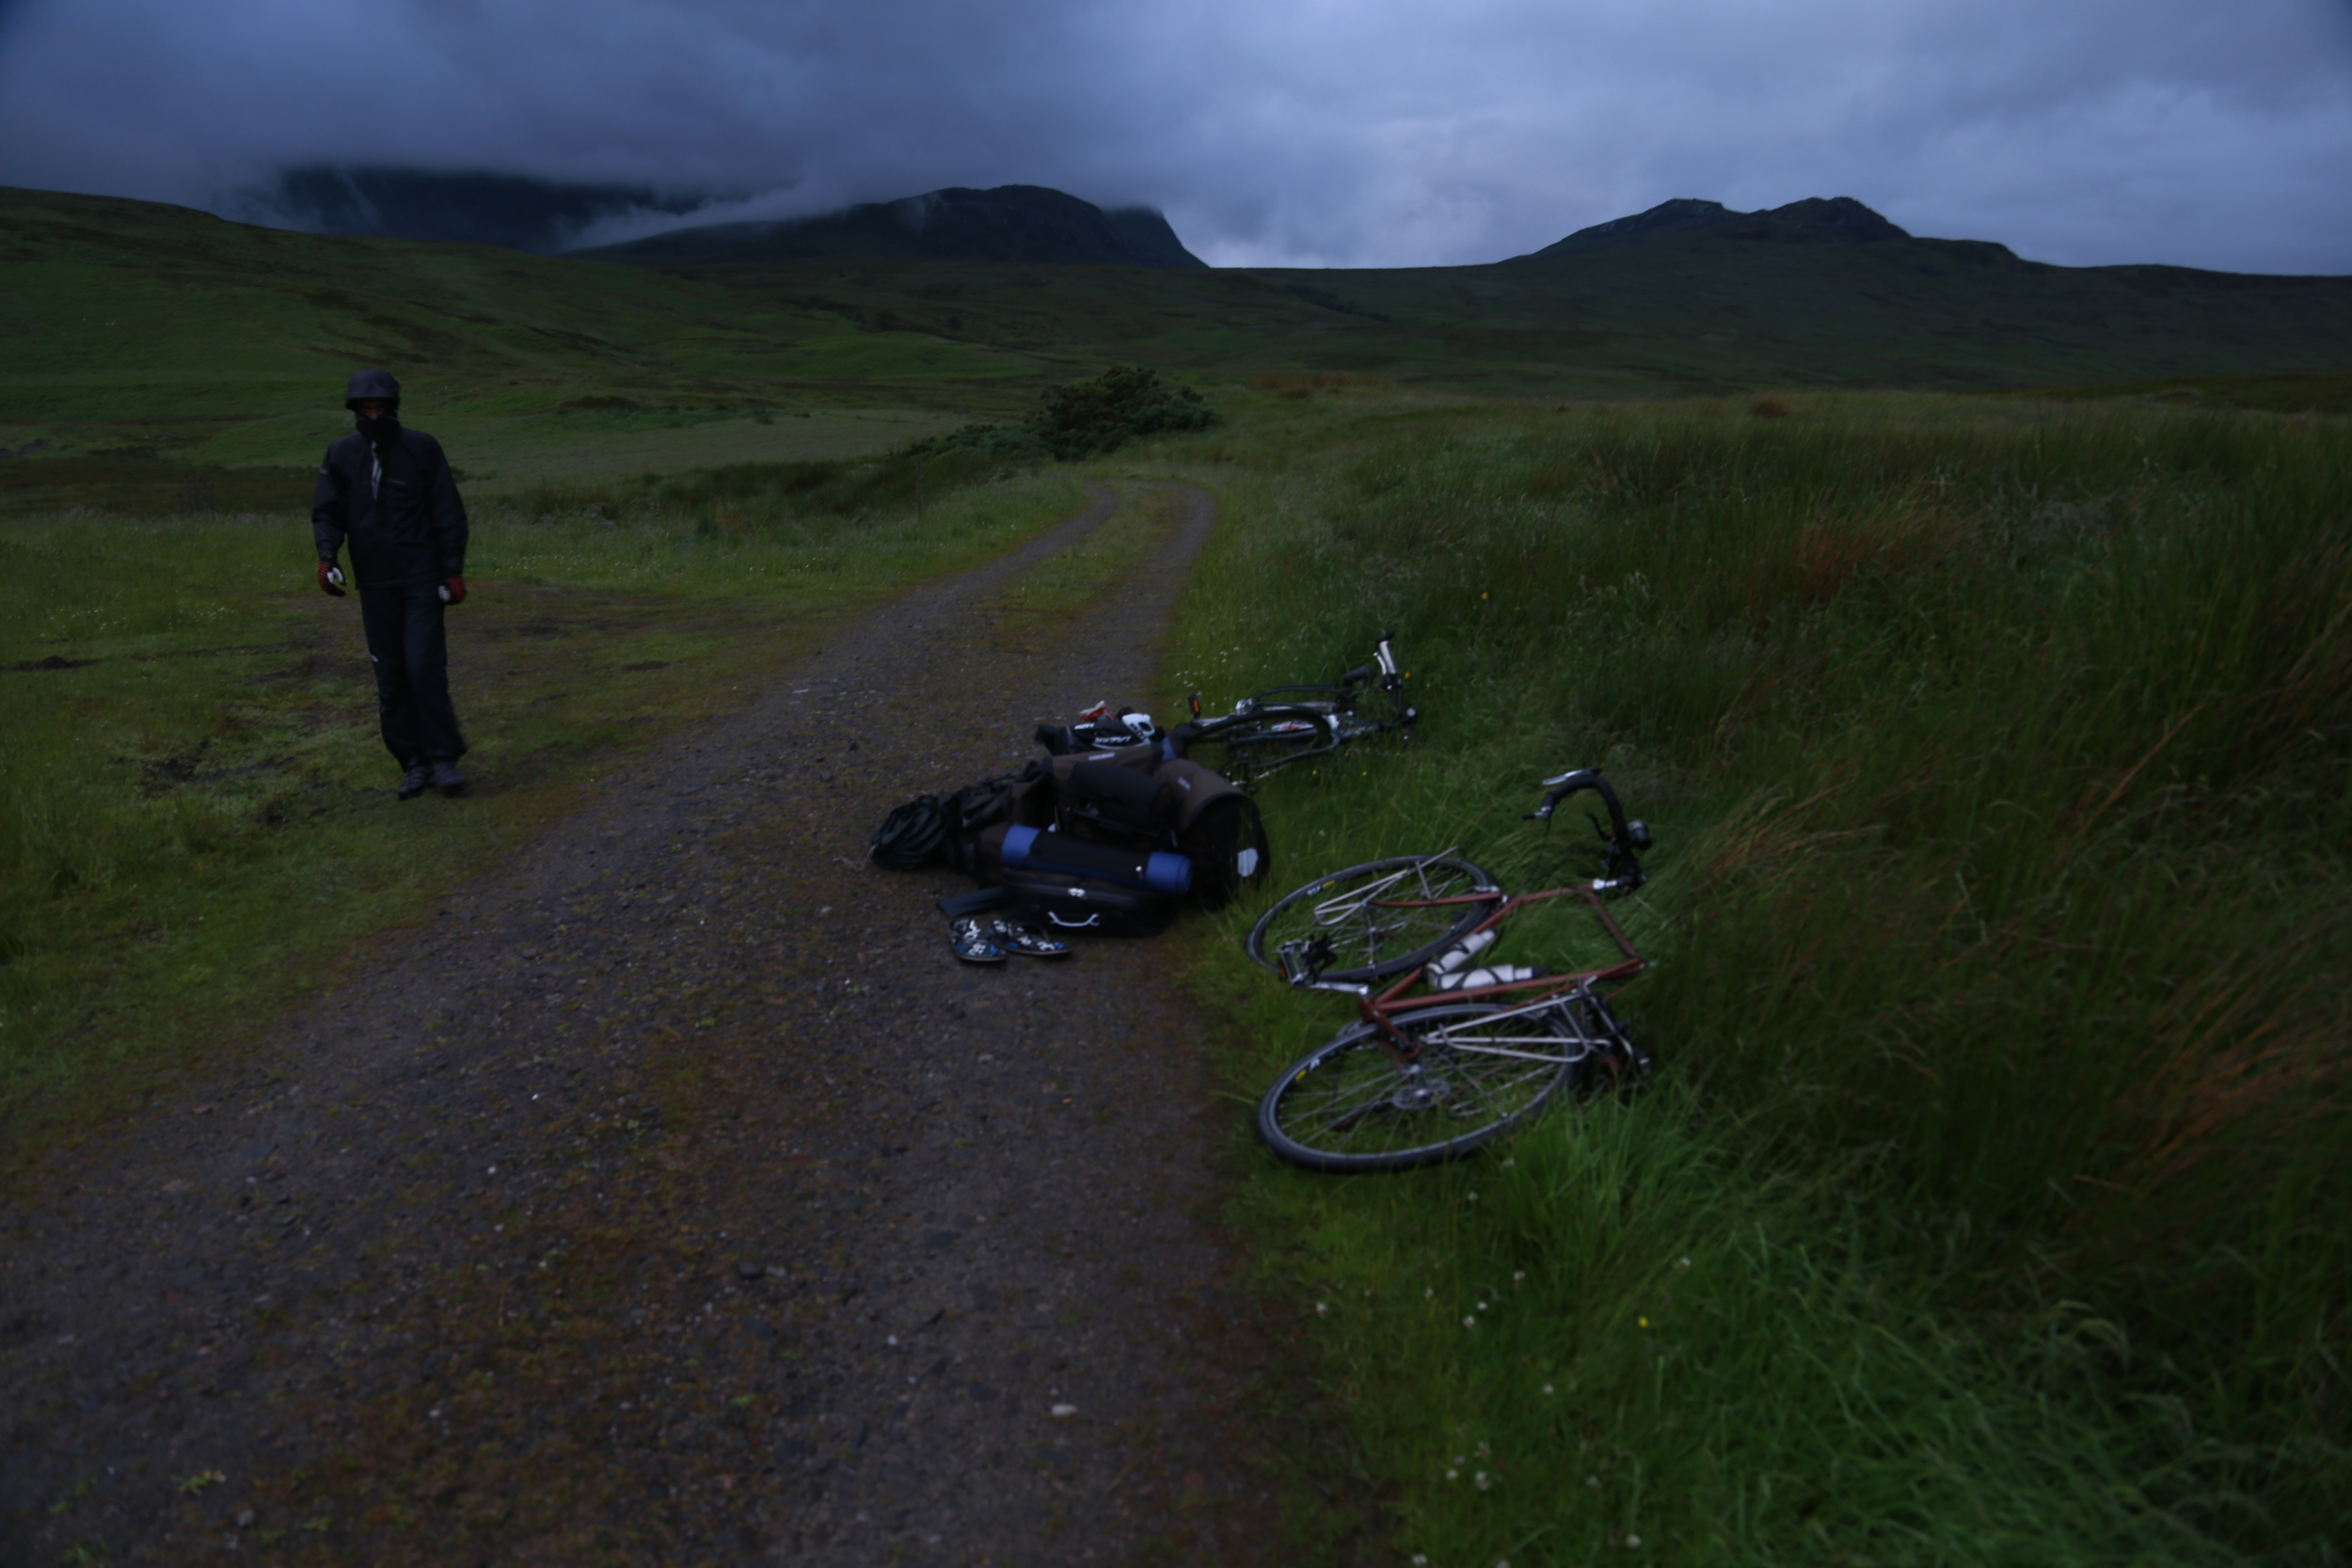 highlands, bikes, bicycle, touring bicycle, midges, scottish midge, tent, camp, wild camping